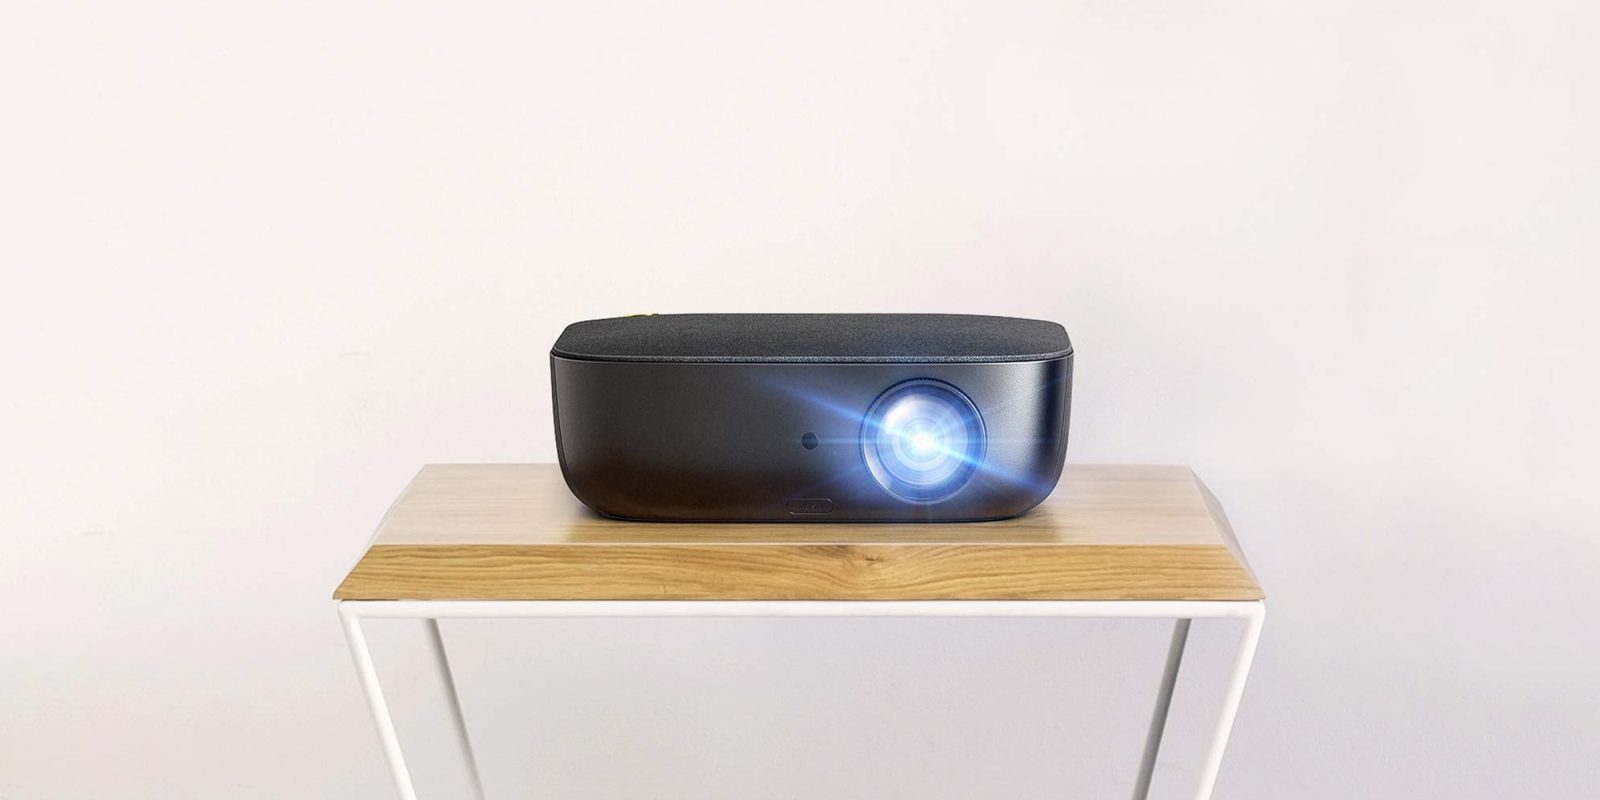 Anker's Prizm II projector brings a 120-inch 1080p screen to your home for $150